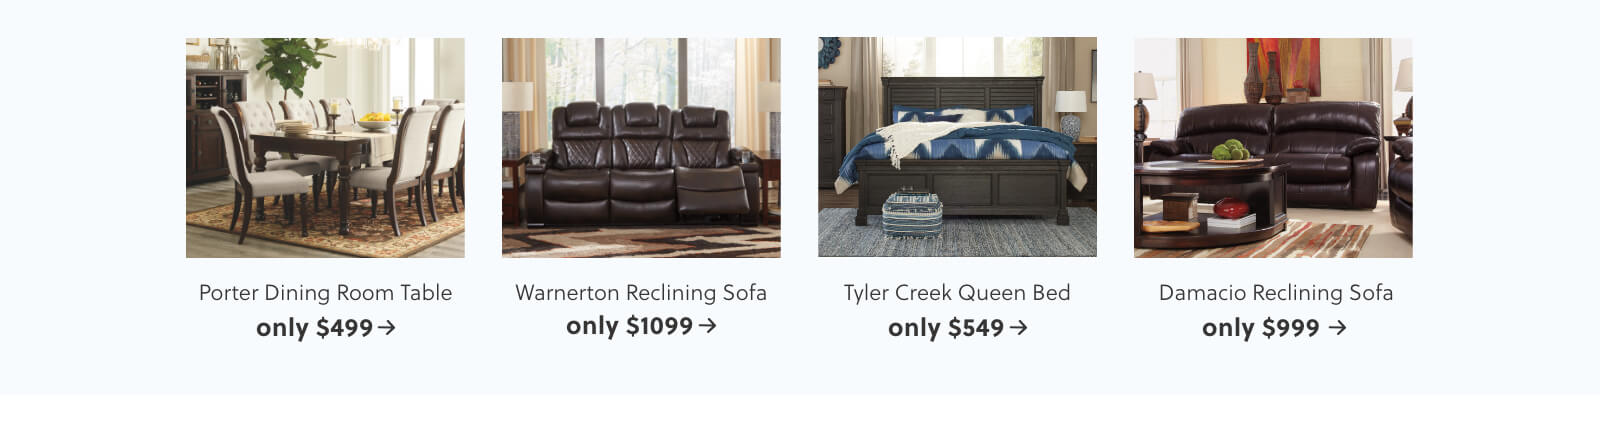 Porter Dining Room Table, Warnerton Reclining Sofa, Tyler Creek Queen Bed, Damacio Reclining Sofa